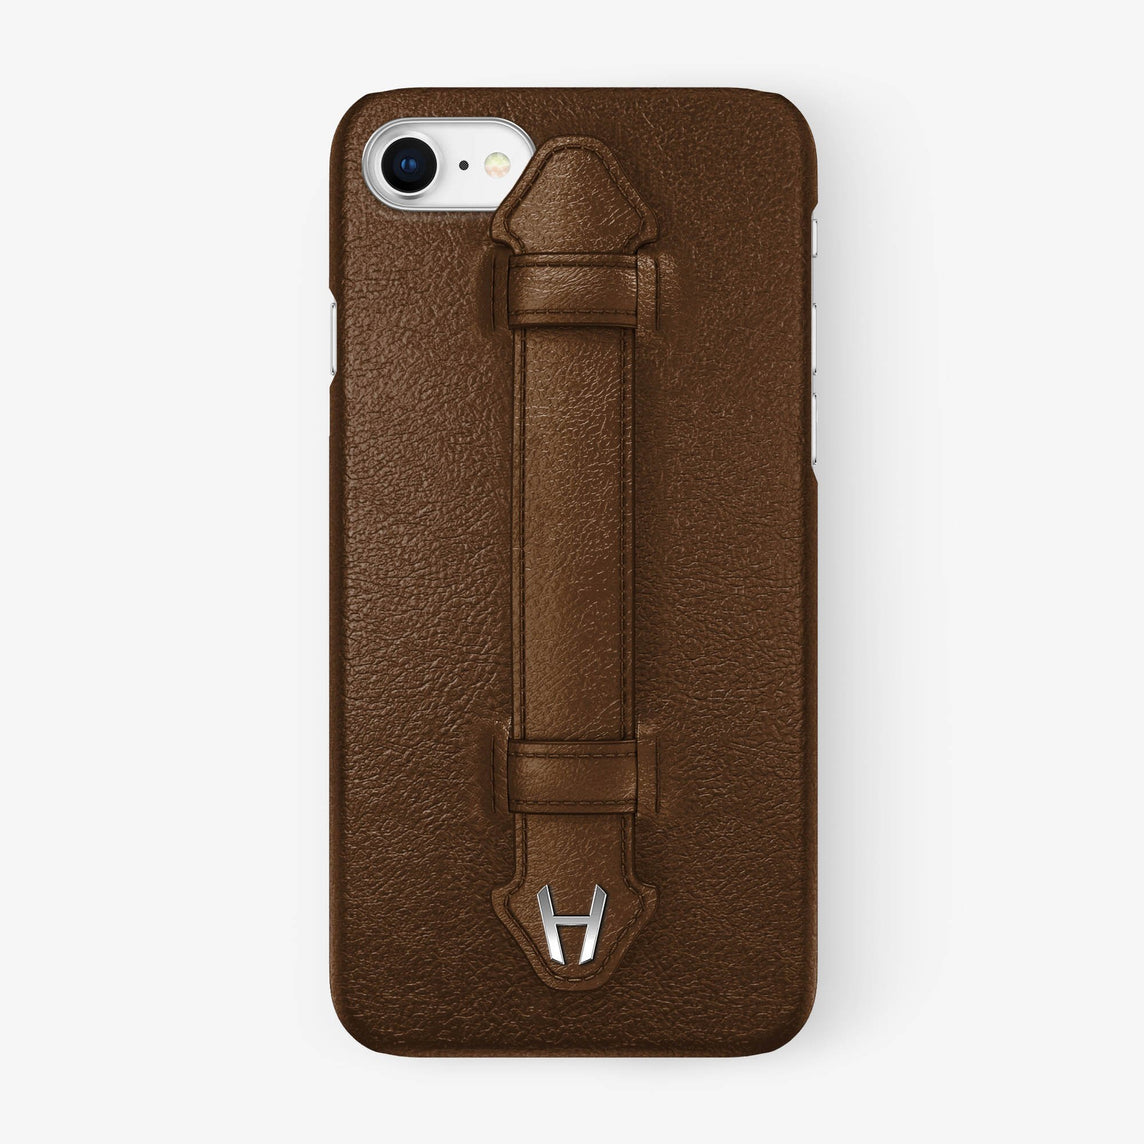 Brown Calfskin iPhone Finger Case for iPhone 7/8 finishing stainless steel - Hadoro Luxury Cases